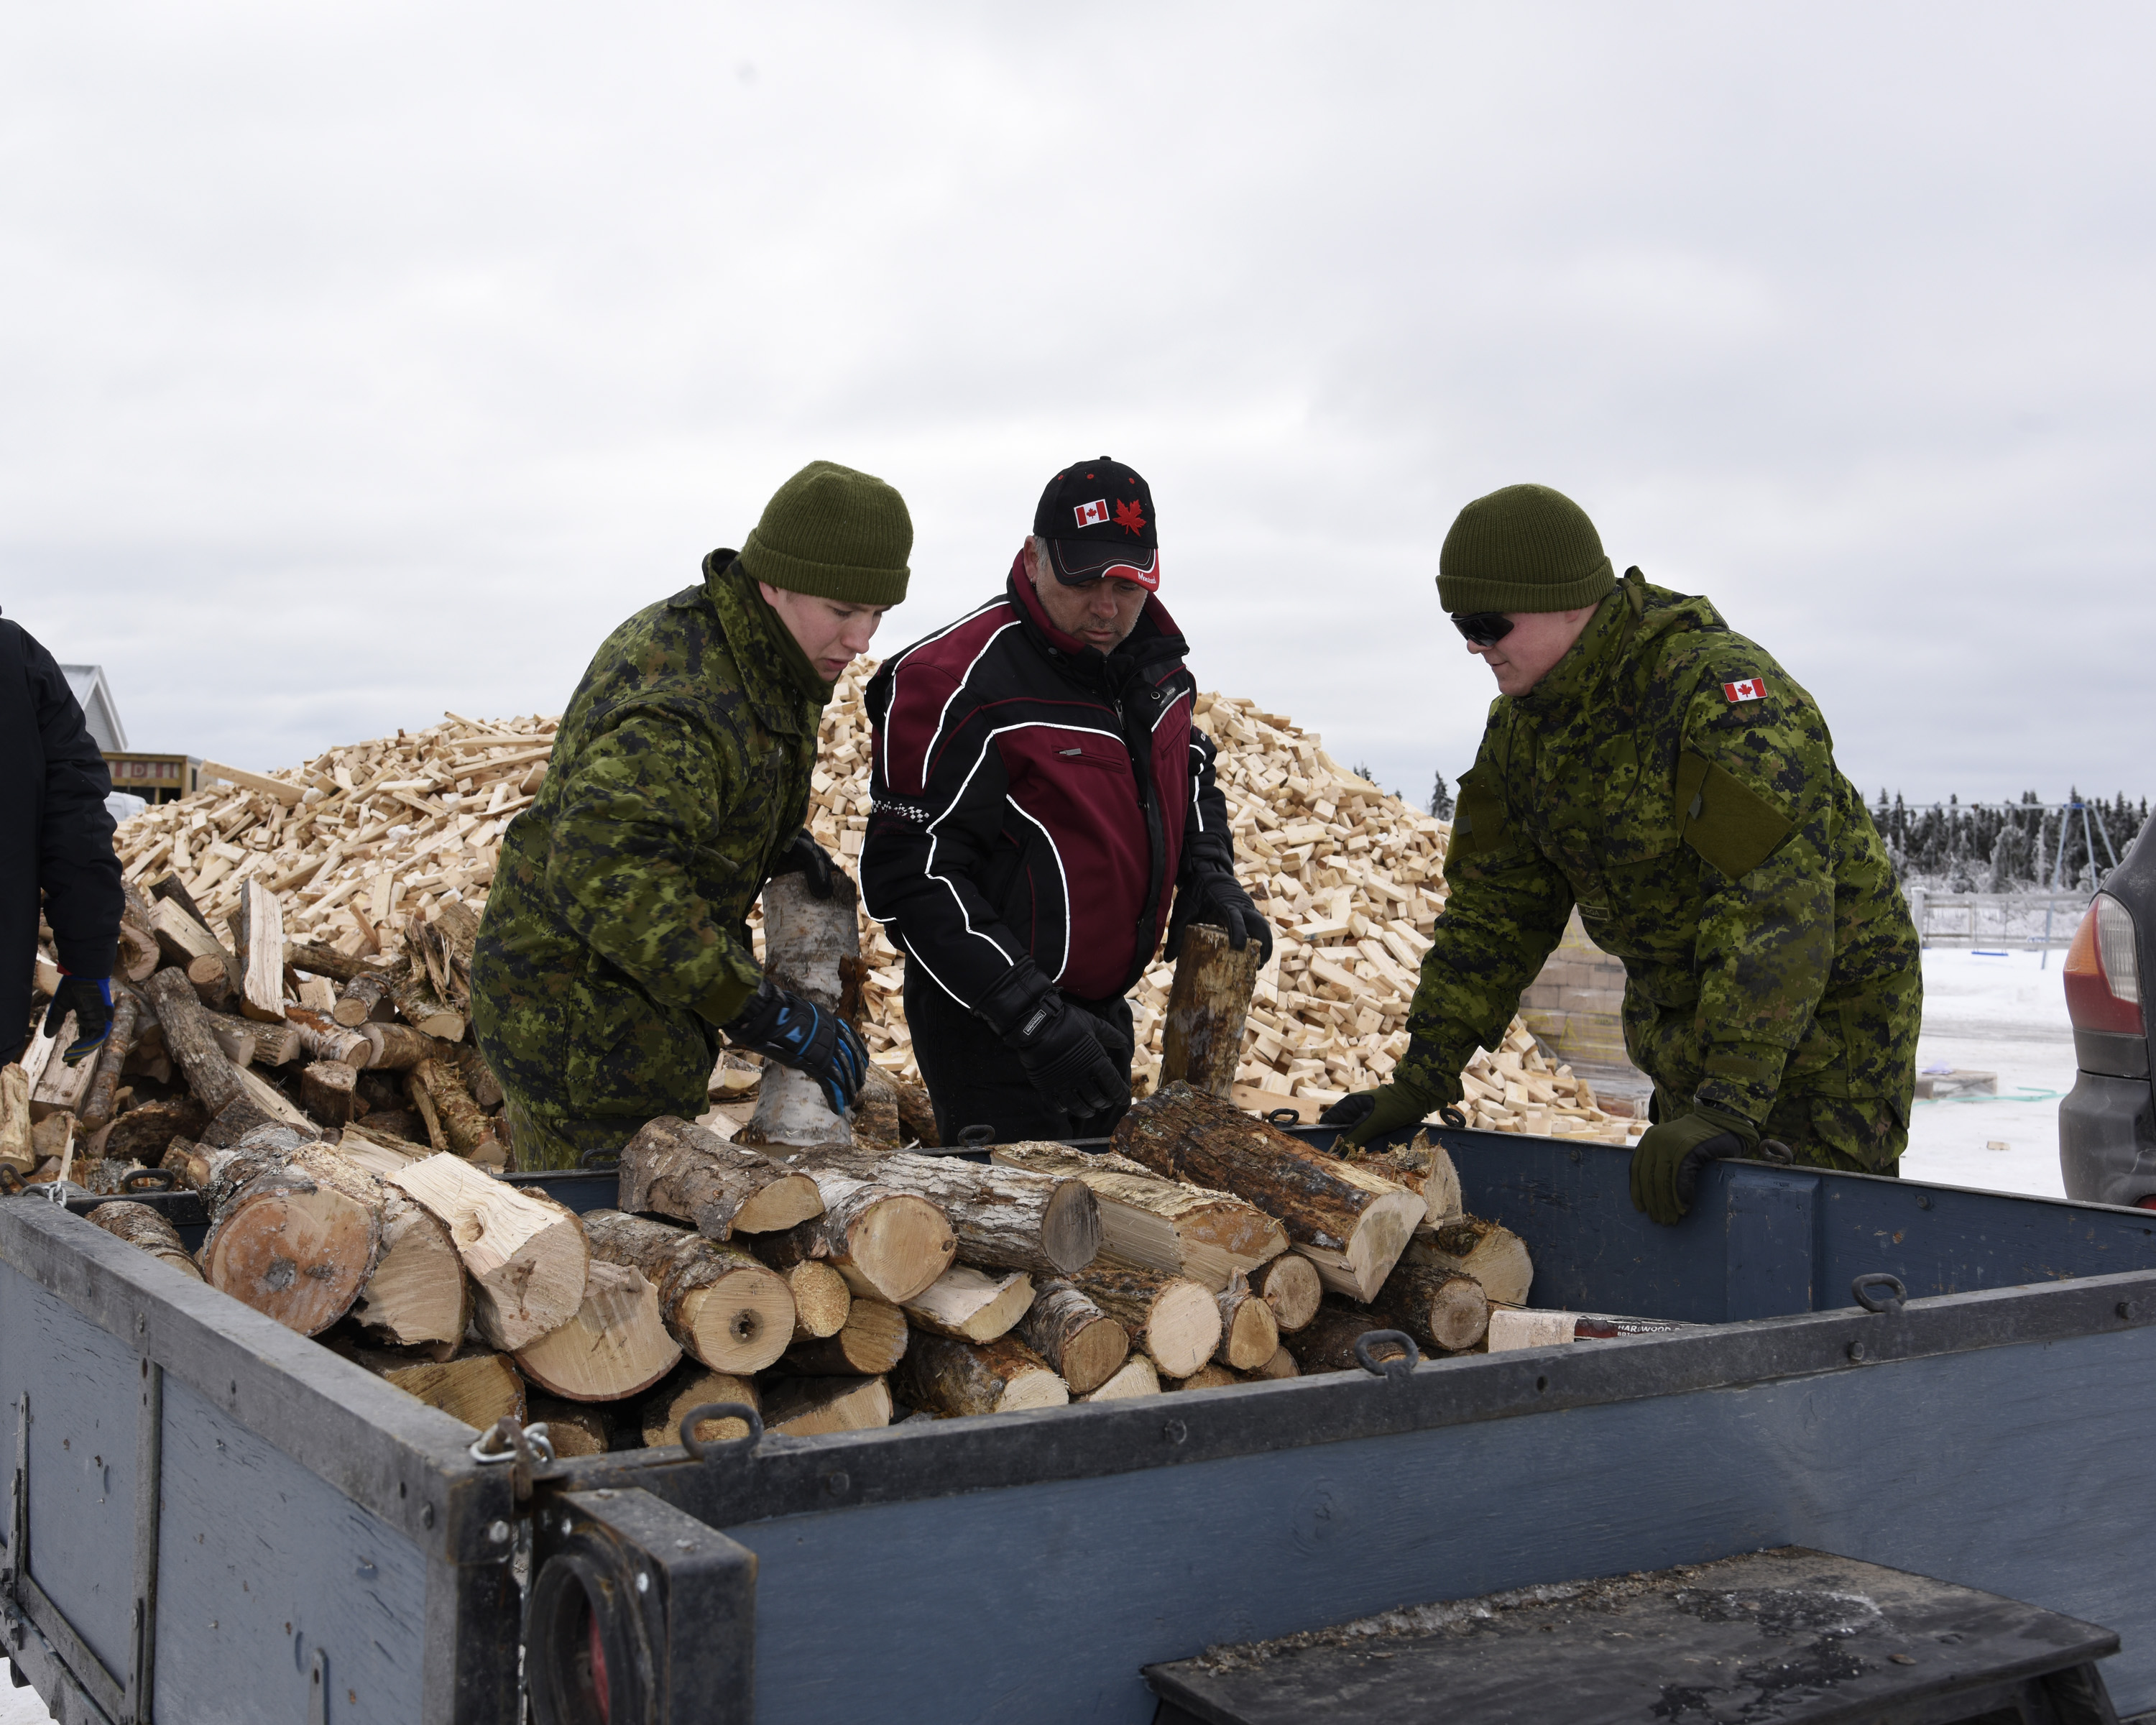 January 31, 2017. Gunner Dillon Ellis and Sapper Sergey Novikov, members of 4th Artillery Regiment (General Support) disperse fire wood to local residents in Sainte-Marie-Sainte Raphael New Brunswick during Operation LENTUS in the Acadian Peninsula of New Brunswick on January 31, 2017. (Photo: WO Jerry Kean, 5 Cdn Div Public Affairs)